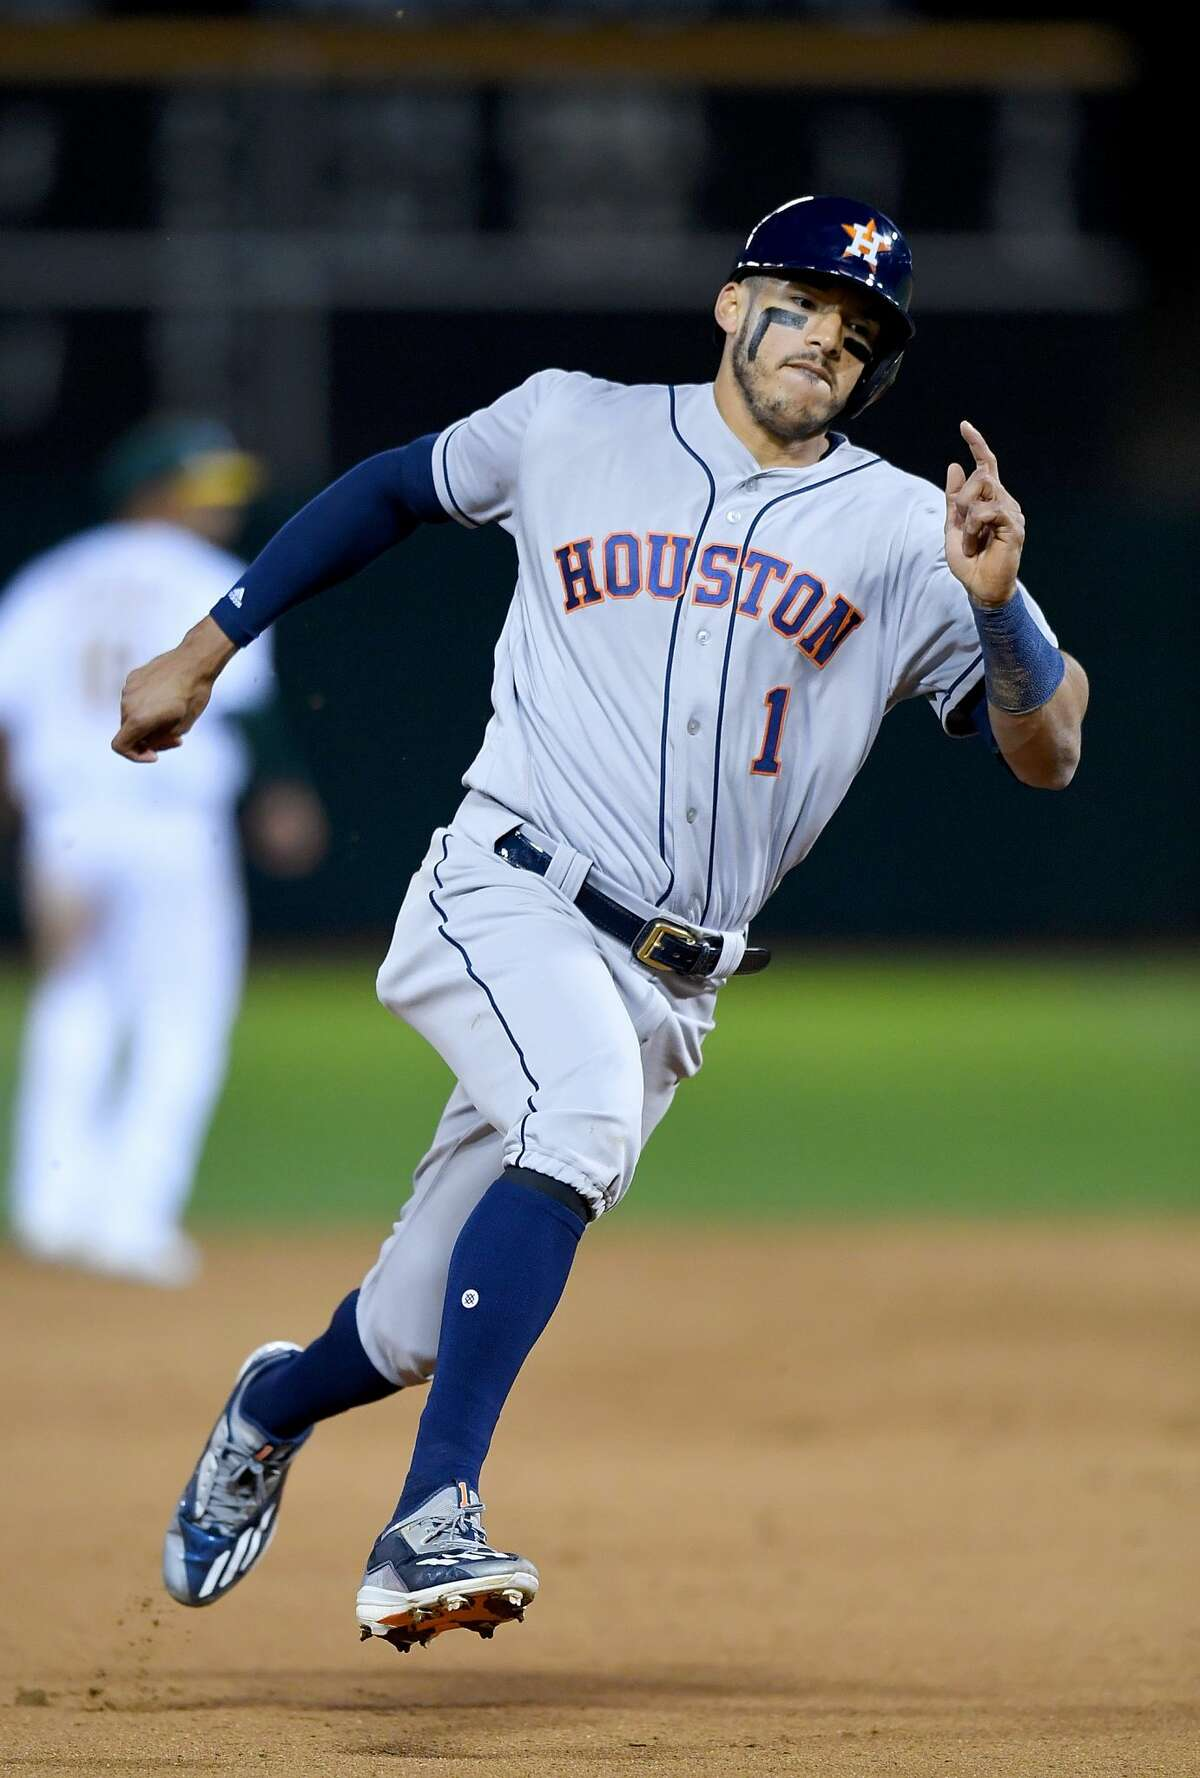 OAKLAND, CA - APRIL 14: Carlos Correa #1 of the Houston Astros runs the bases to score against the Oakland Athletics in the top of the seventh inning at Oakland Alameda Coliseum on April 14, 2017 in Oakland, California. (Photo by Thearon W. Henderson/Getty Images)